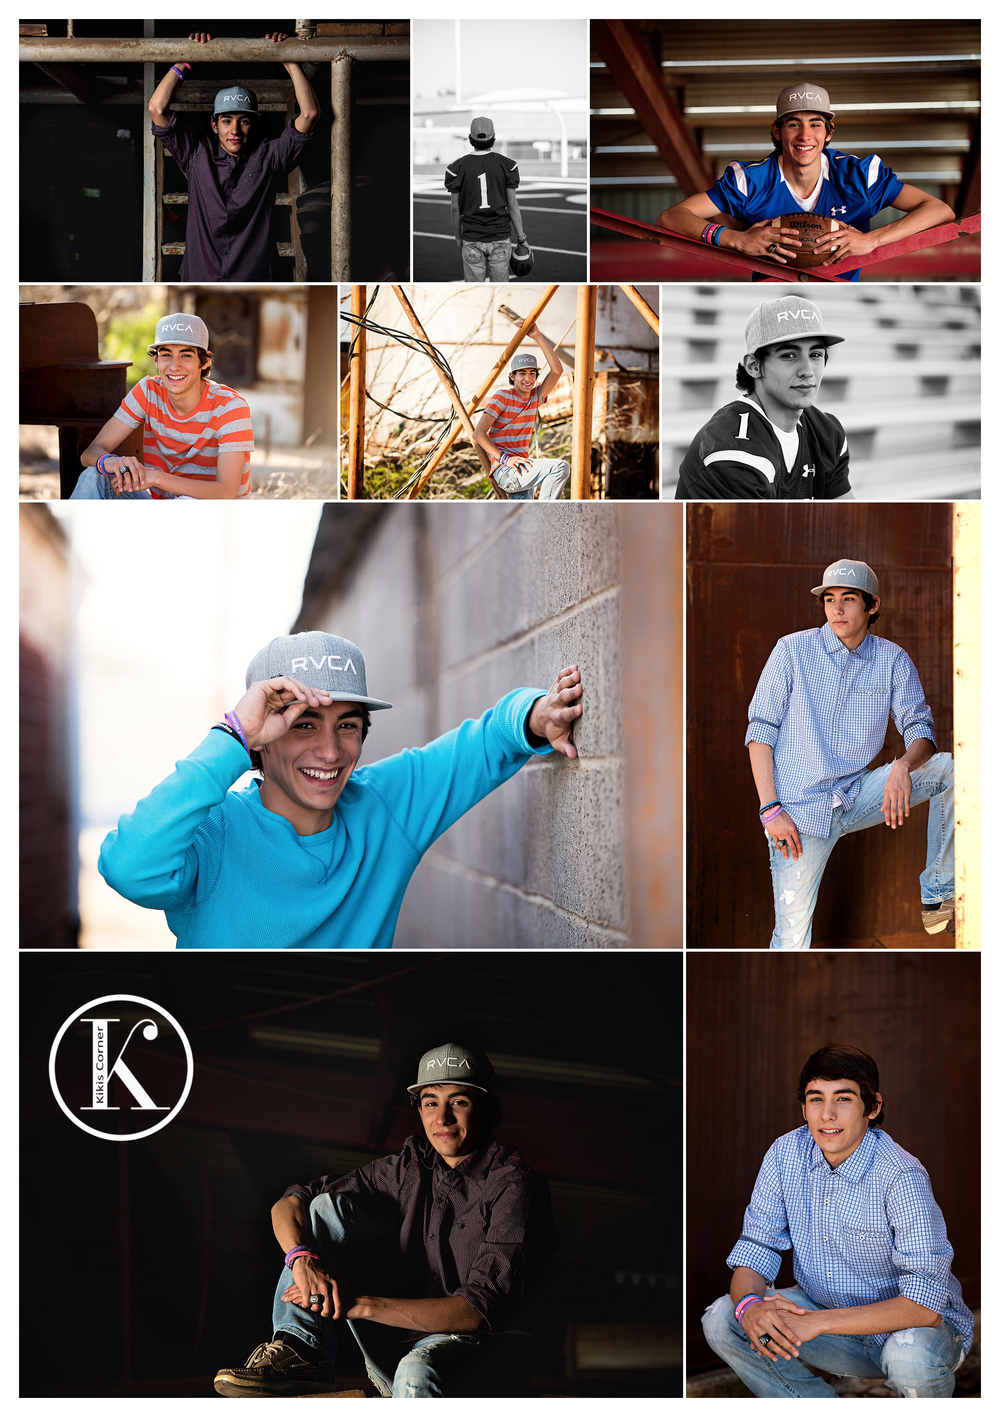 Bryson, it was a joy to capture your senior images! I hope you enjoy them as much as I enjoyed taking them!